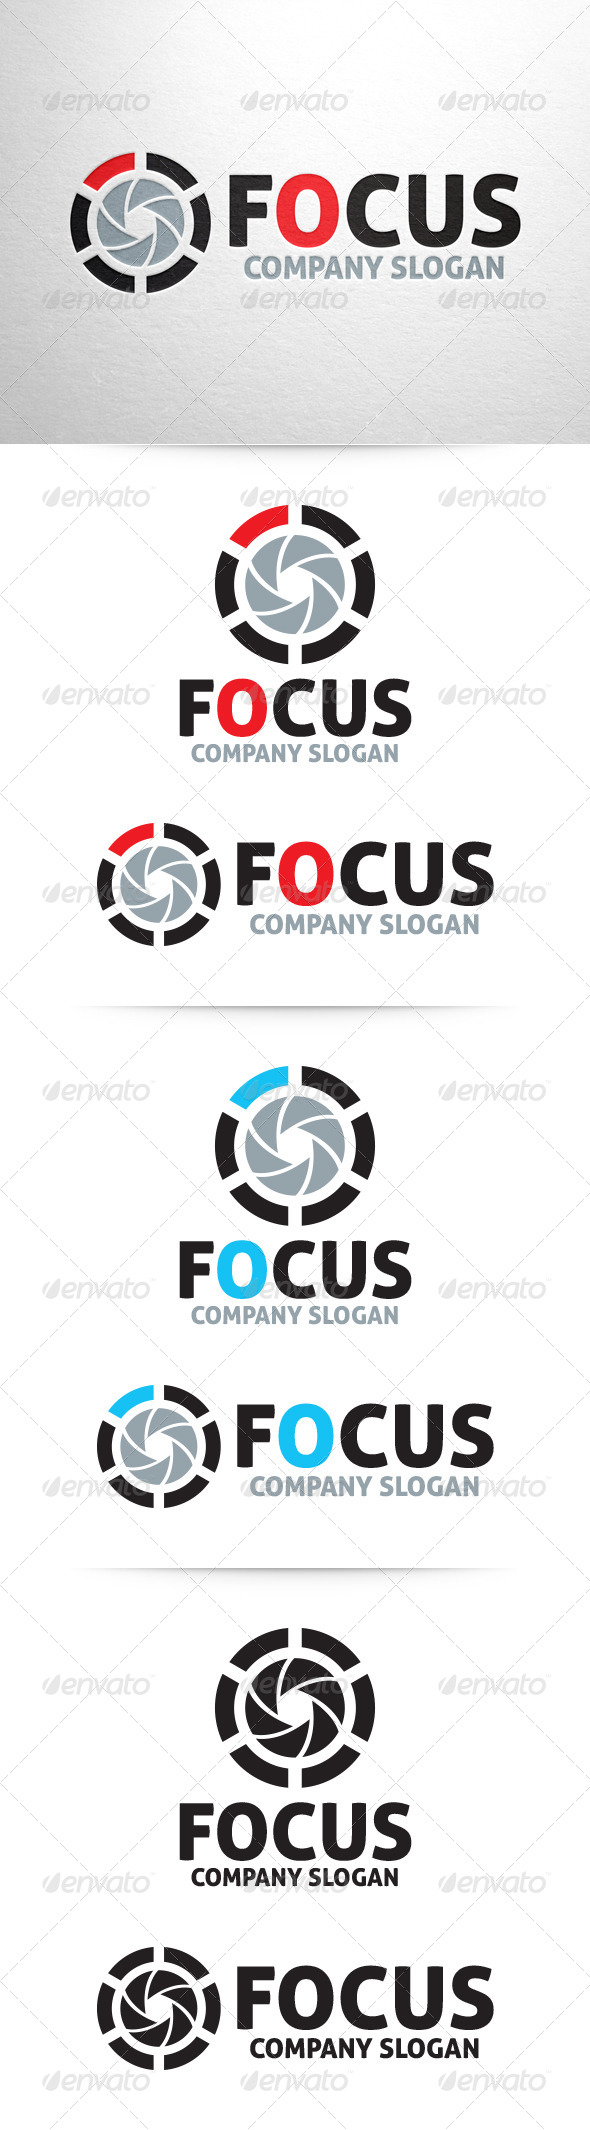 Focus Photography Logo Template By Liveatthebbq Graphicriver